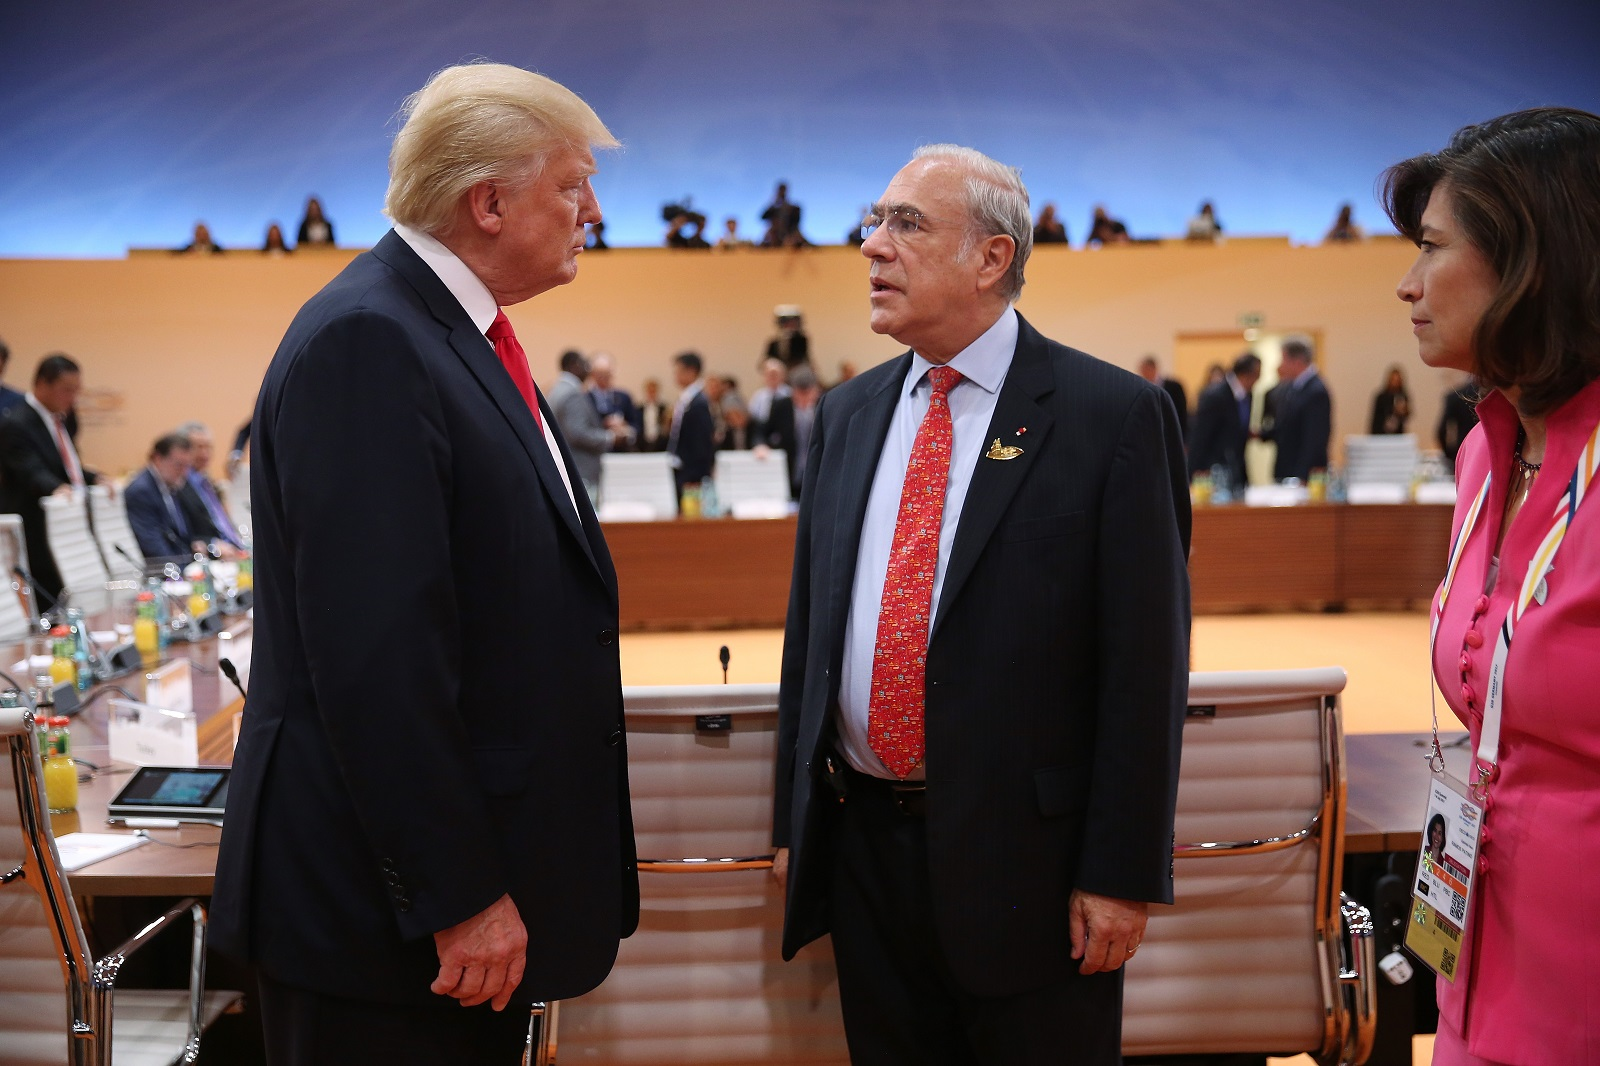 US President Donald Trump with OECD Secretary-General Angel Gurria at the G20 leaders meeting in Hamburg on 8 July. (Photo by Sean Gallup/Getty Images)